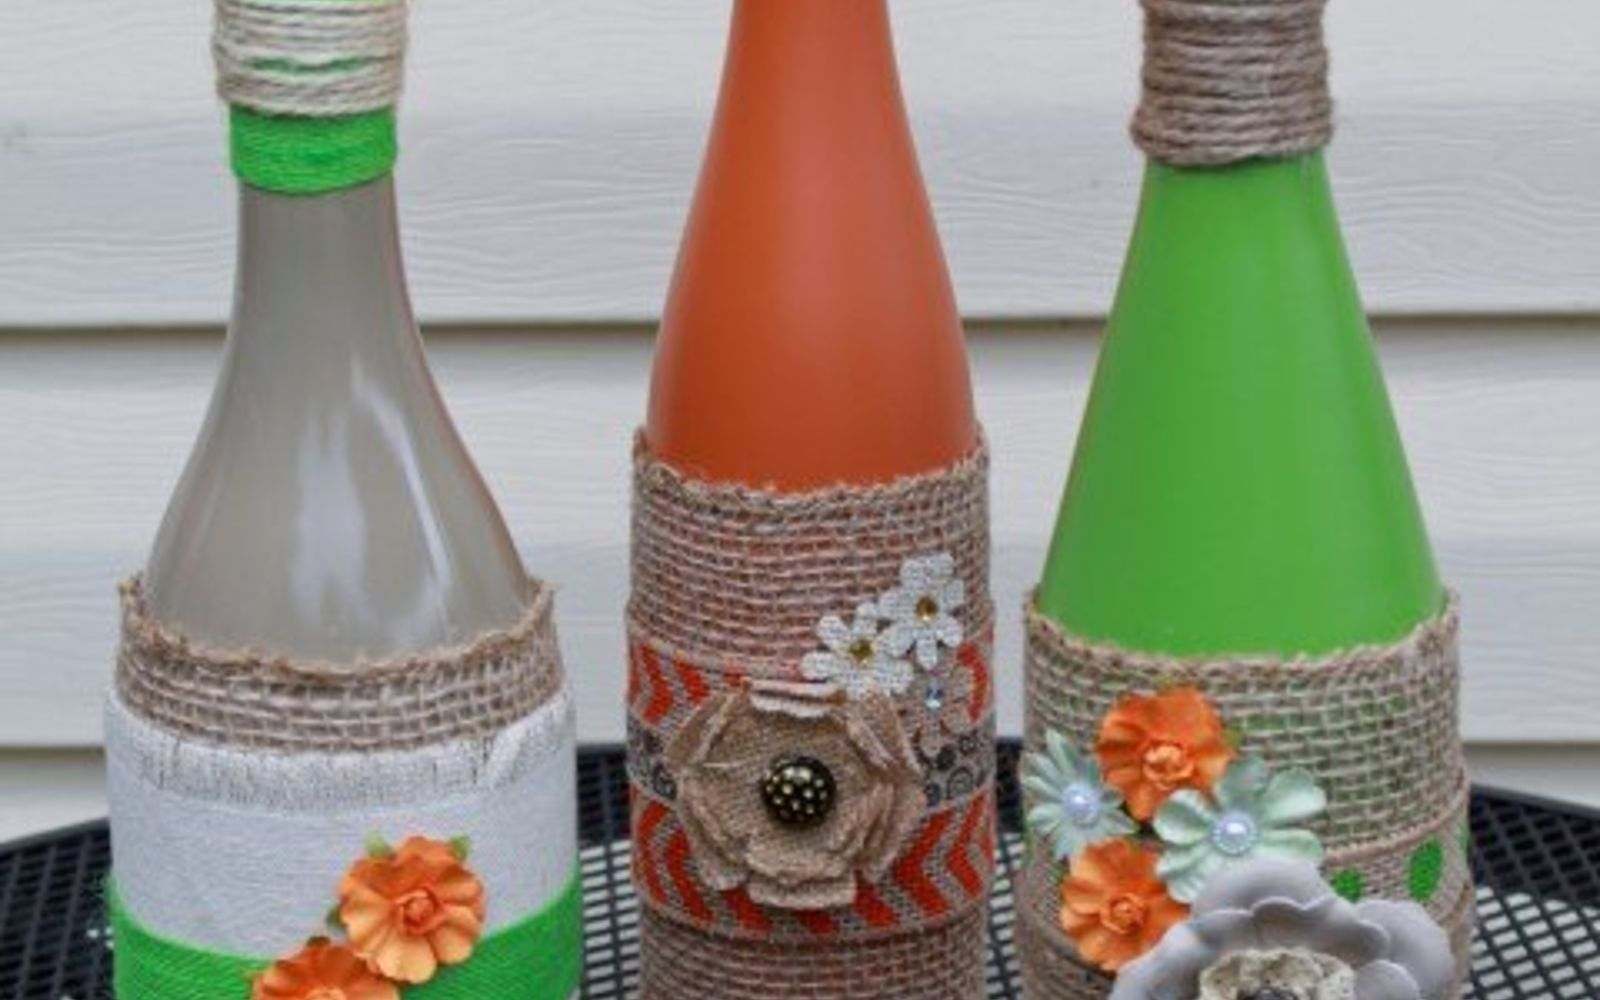 s 15 incredible backyard ideas using empty wine bottles, gardening, outdoor living, repurposing upcycling, Light your backyard corners with tiki torches